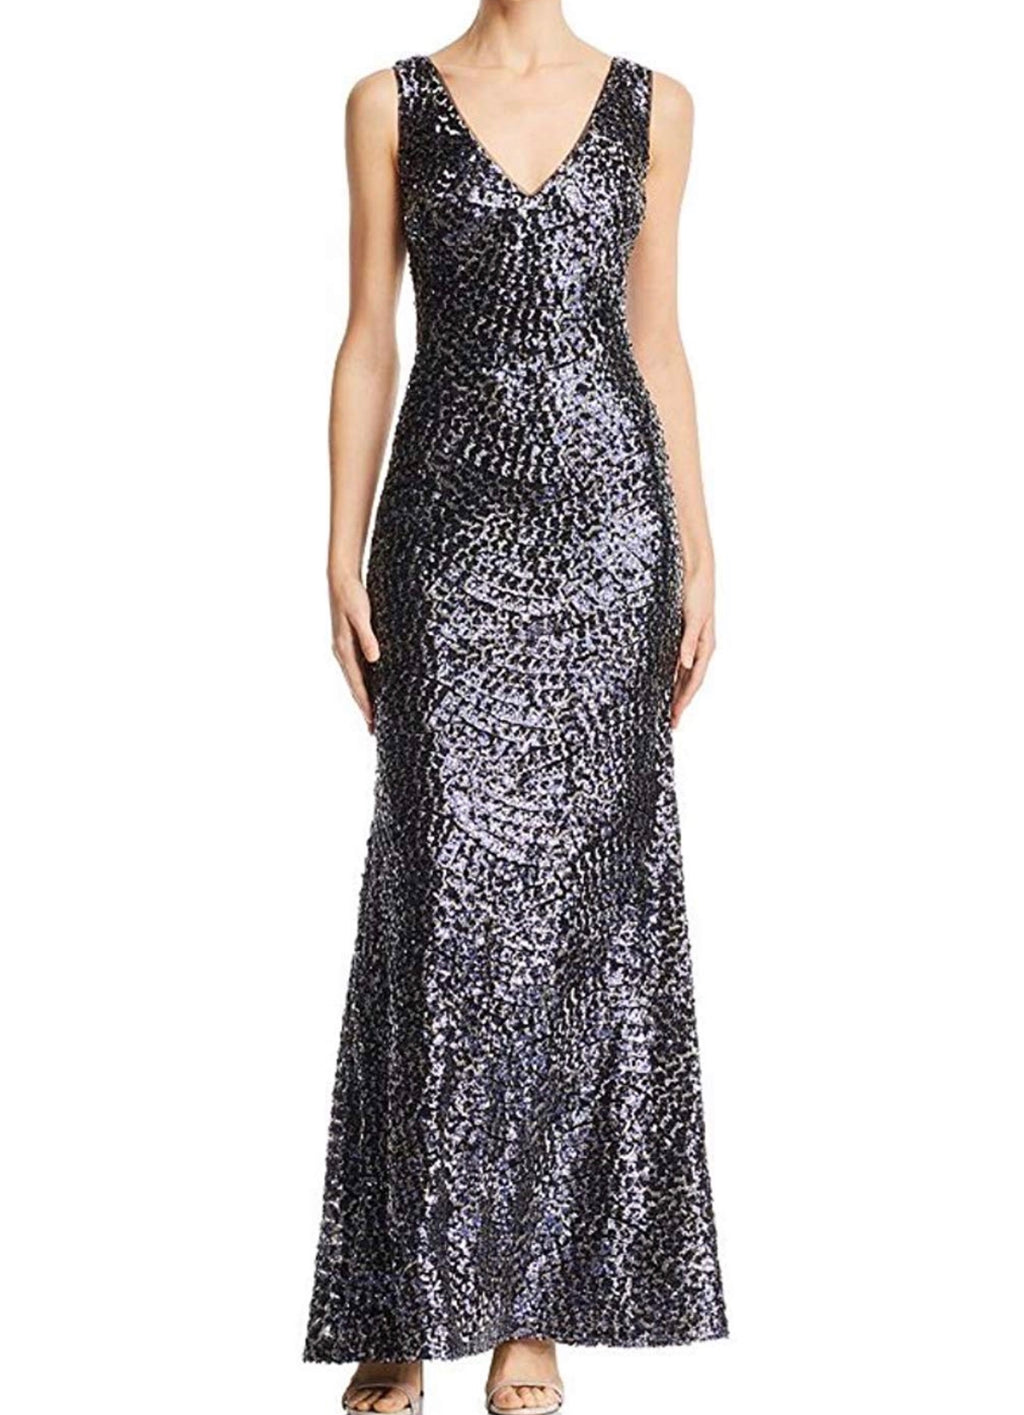 Laundry by Shelli Segal Sequin V-neck Gown - CYC Boutique